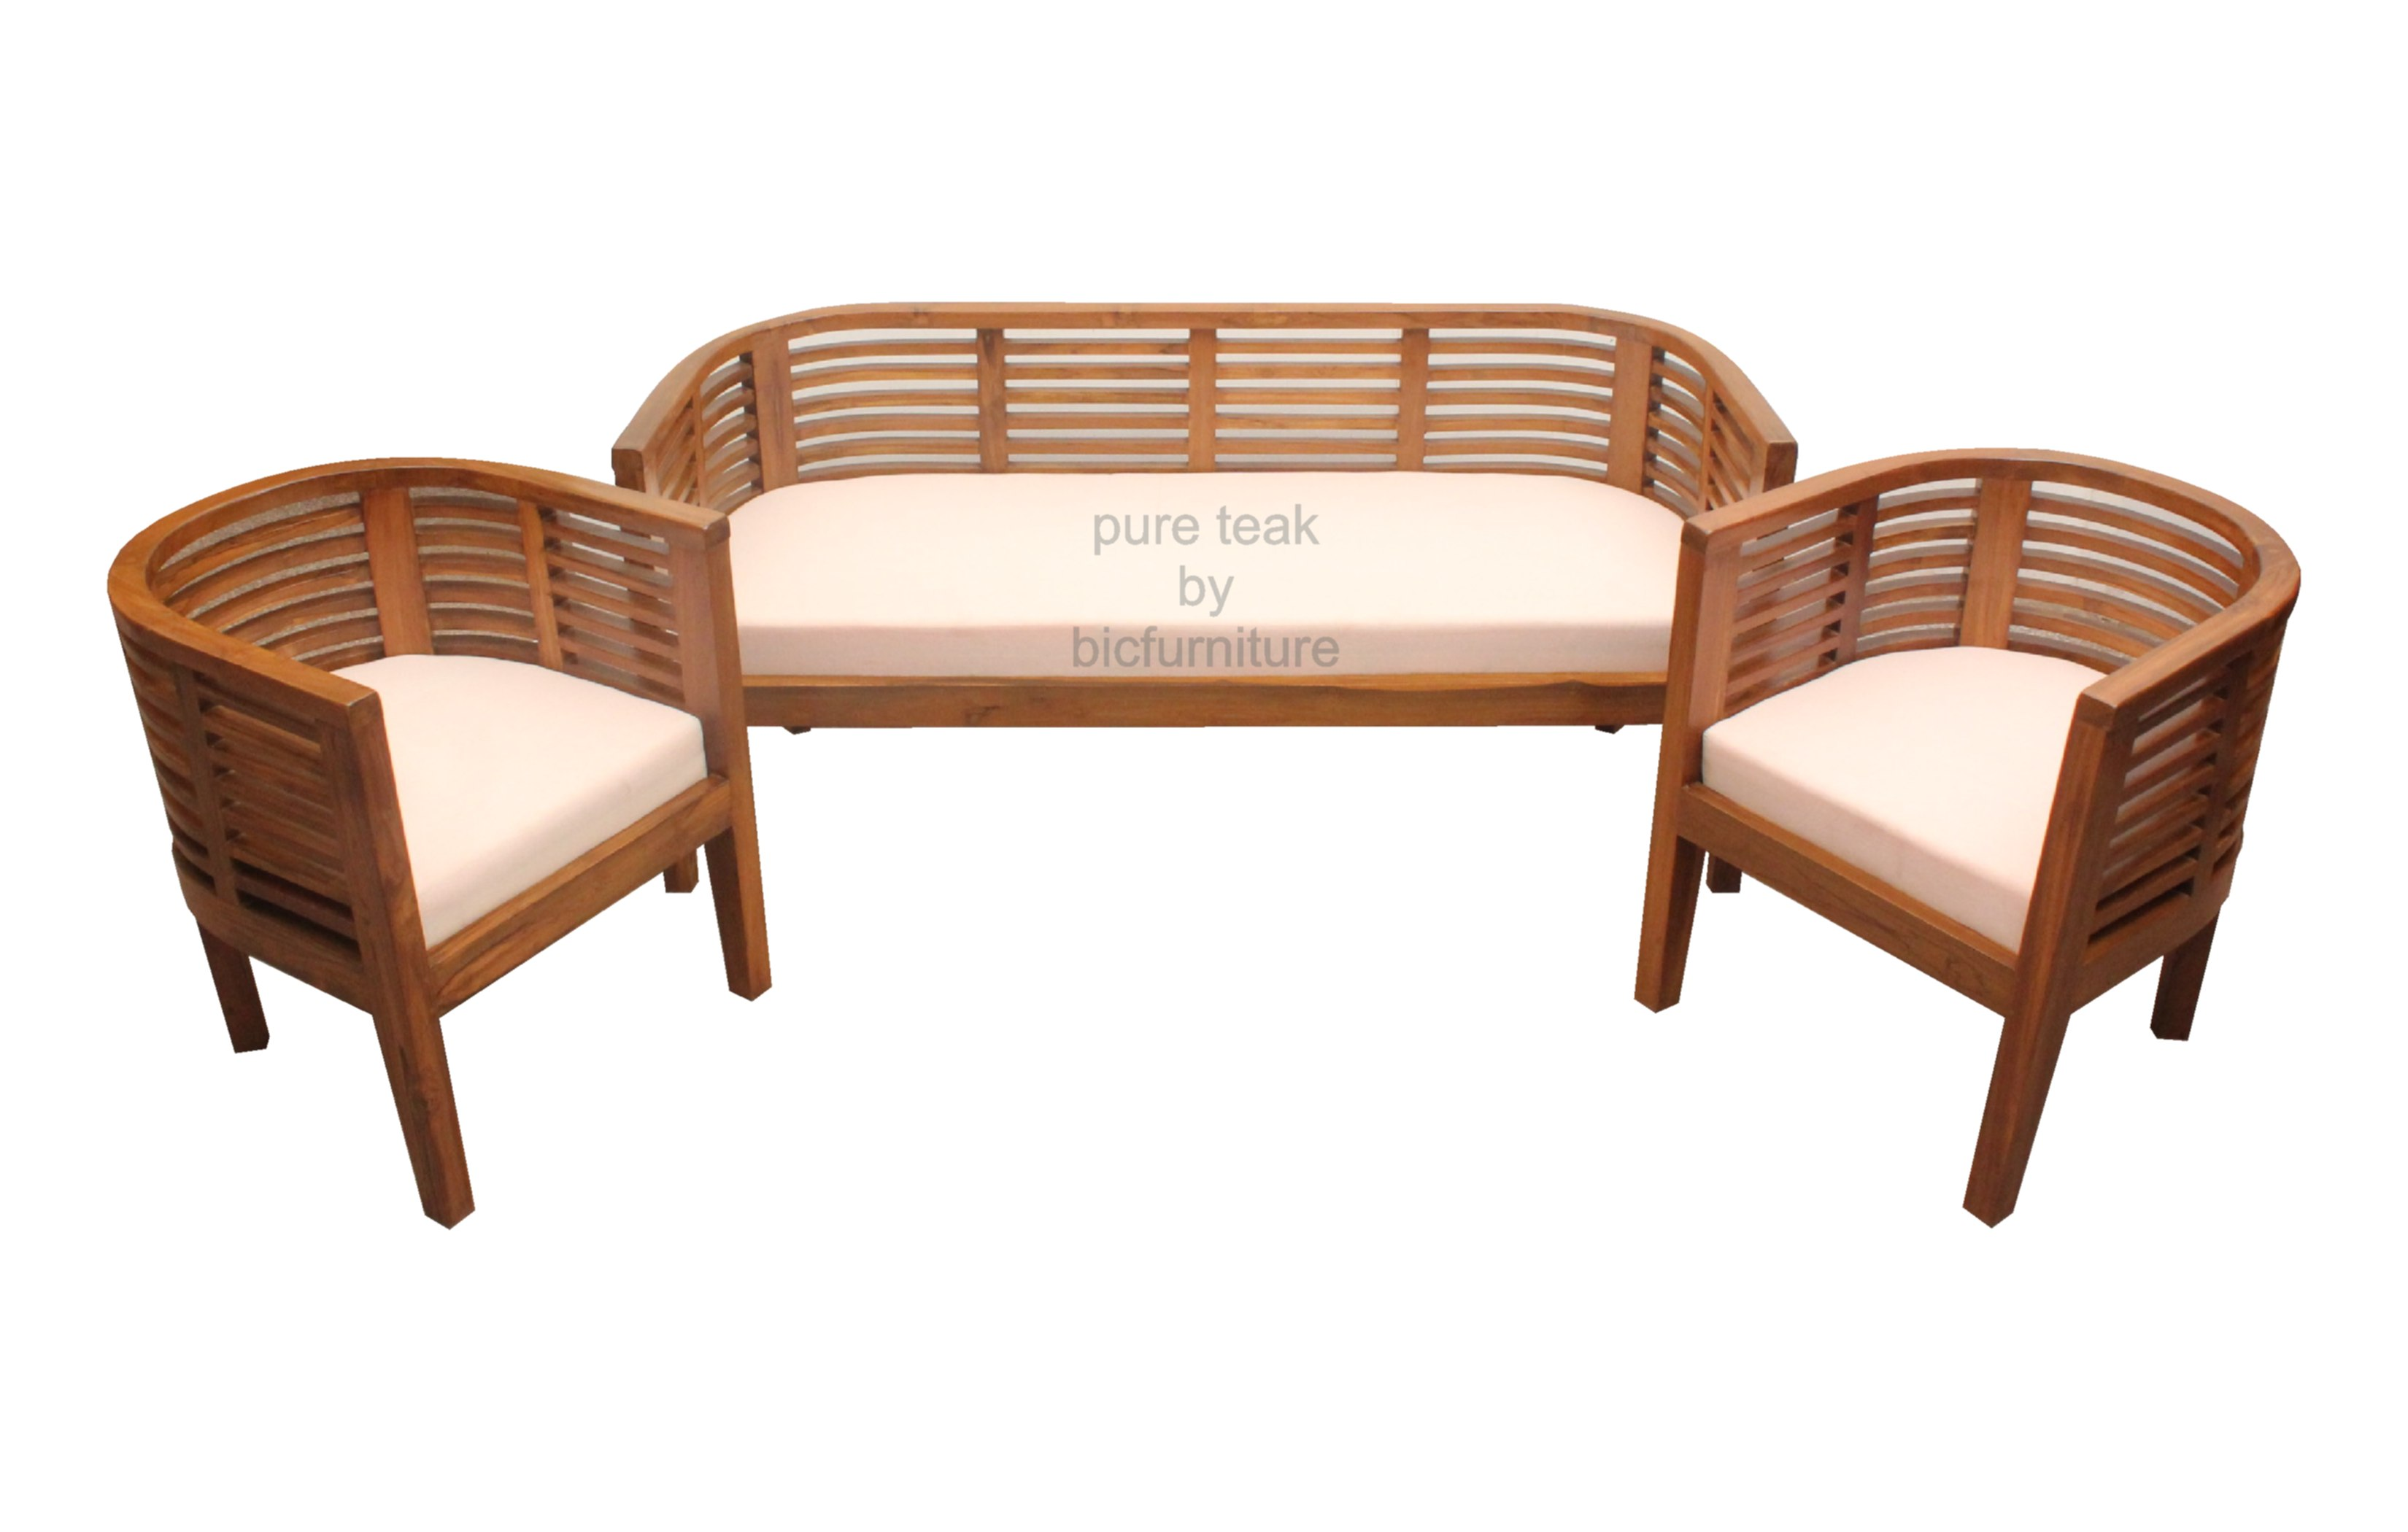 Teak Wood Furniture Sofa Set Images Galleries With A Bite